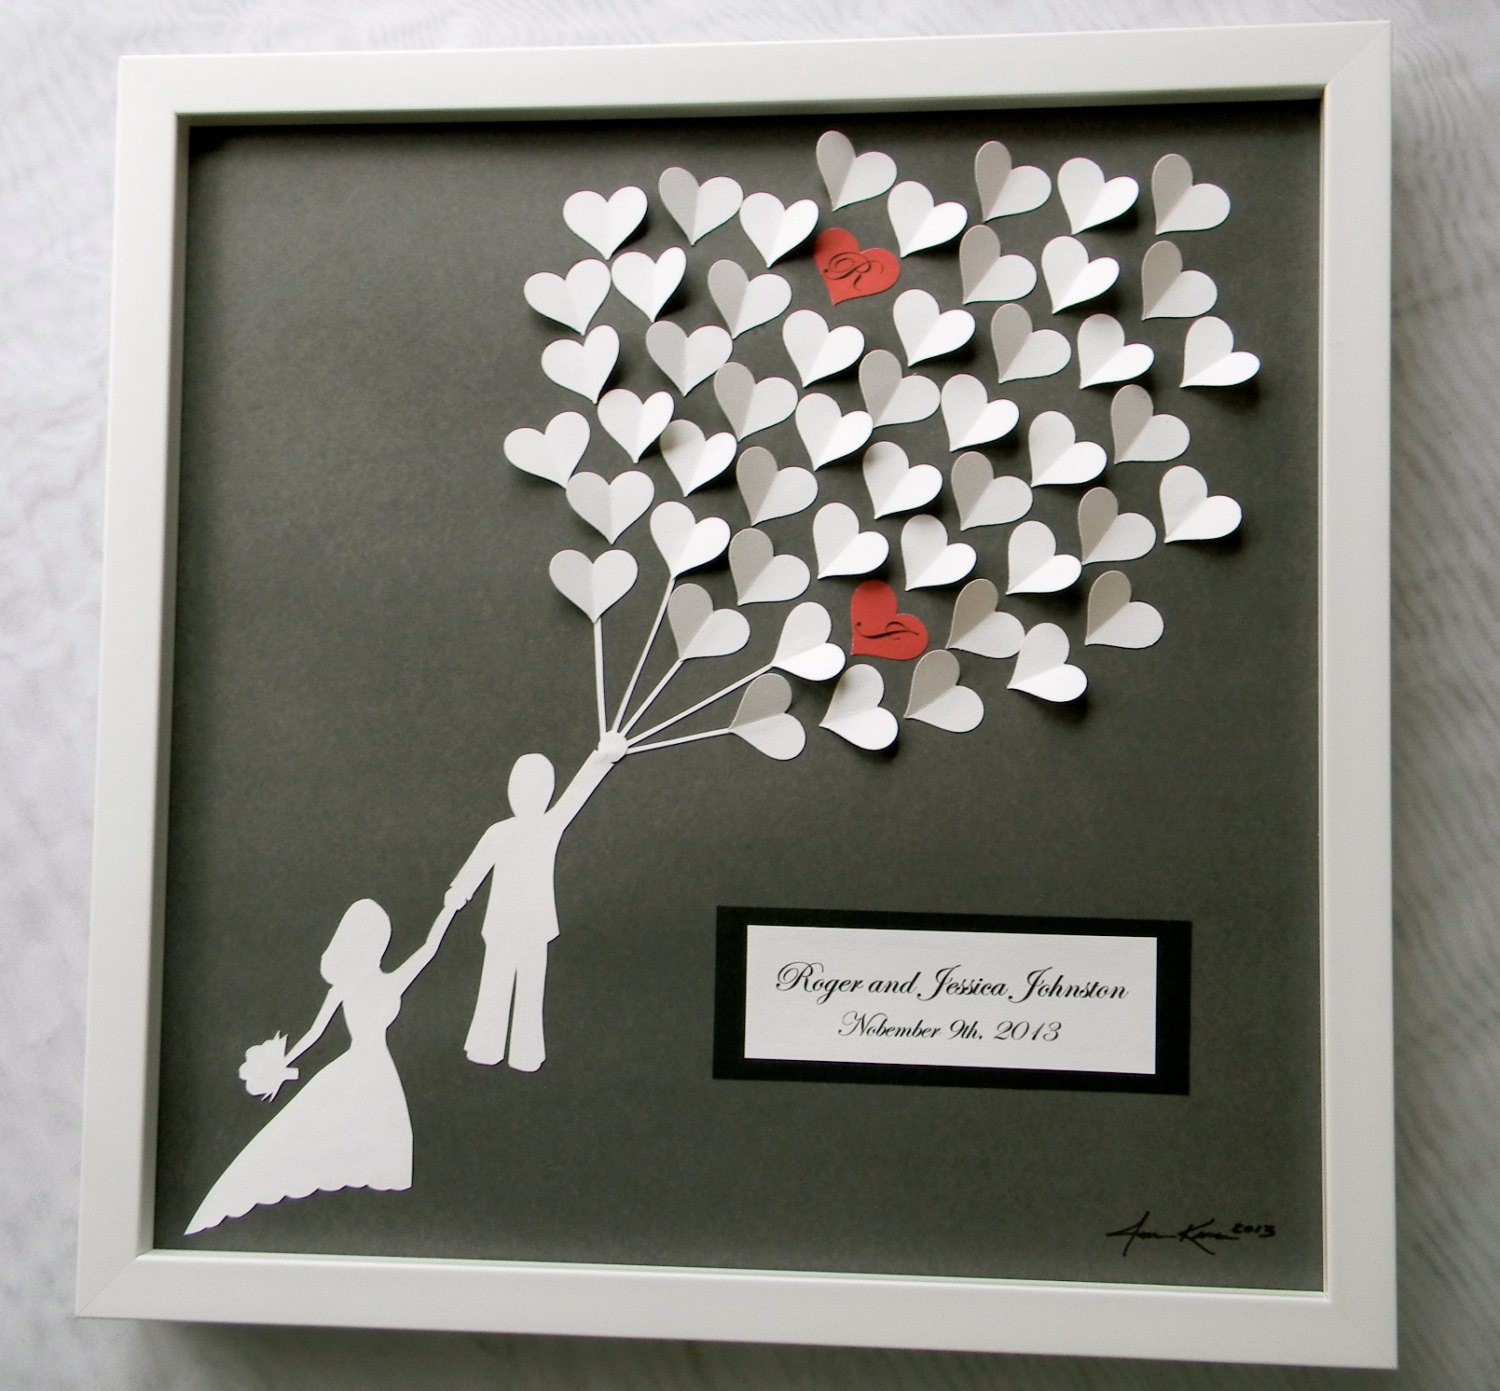 Best ideas about Wedding Guest Gift Ideas . Save or Pin 25 INETRESTING THANK YOU WEDDING GIFT FOR THE GUESTS Now.